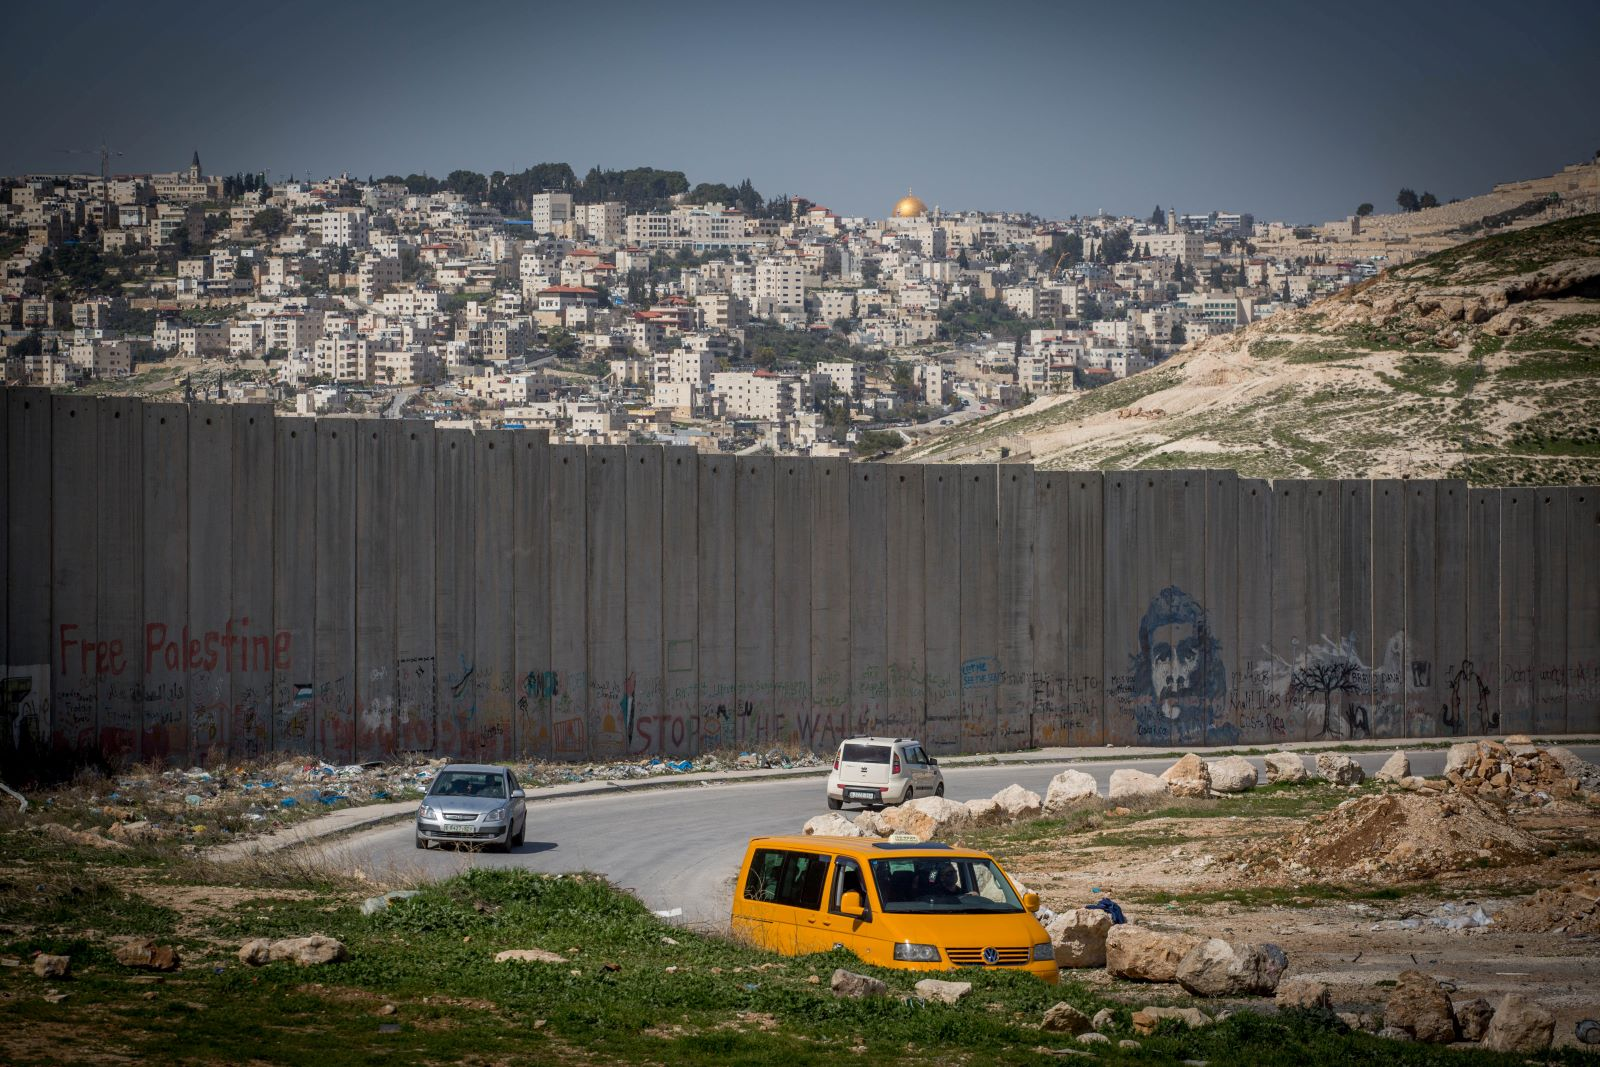 View of the Separation Wall as seen from the Palestinian village of Abu Dis near East Jerusalem. February 26, 2017. (Miriam Alster/Flash90)